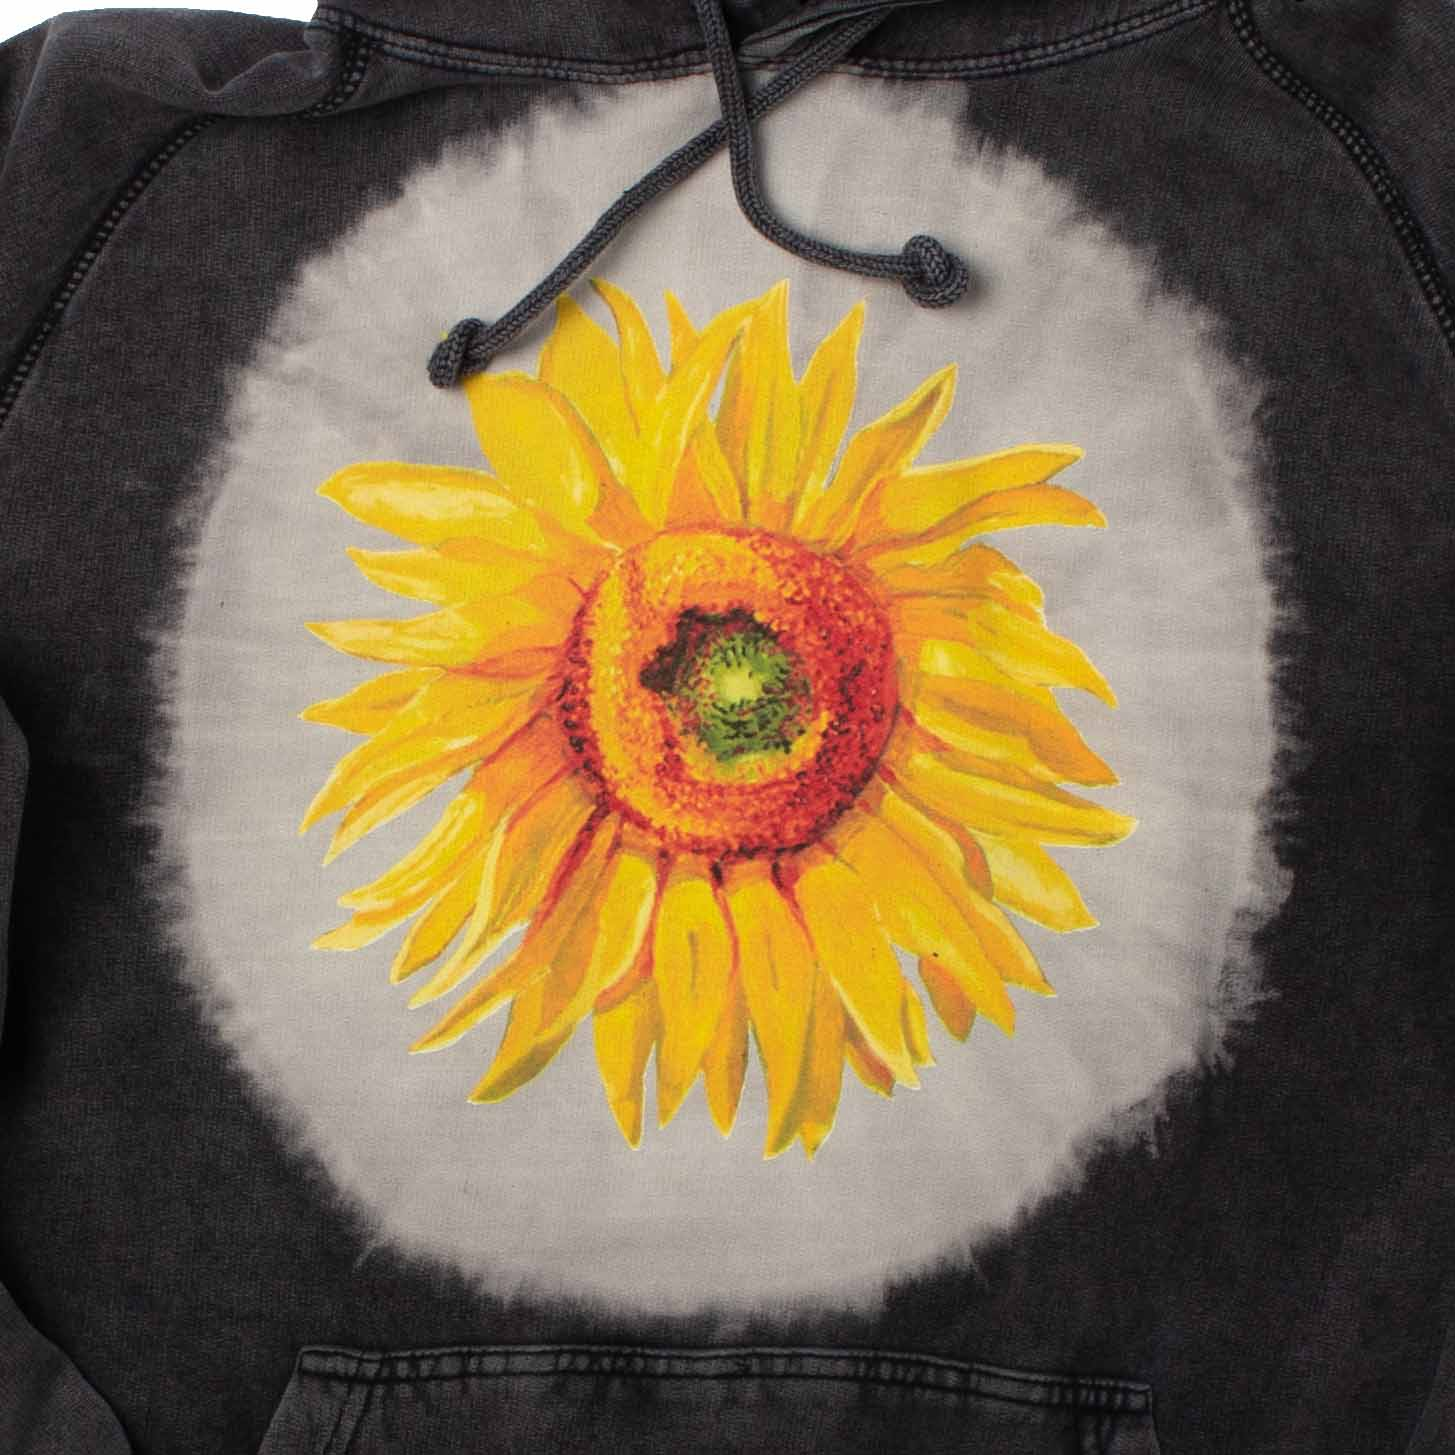 Altru Apparel Van Gogh Big Sunflower Hoodie Sweatshirt